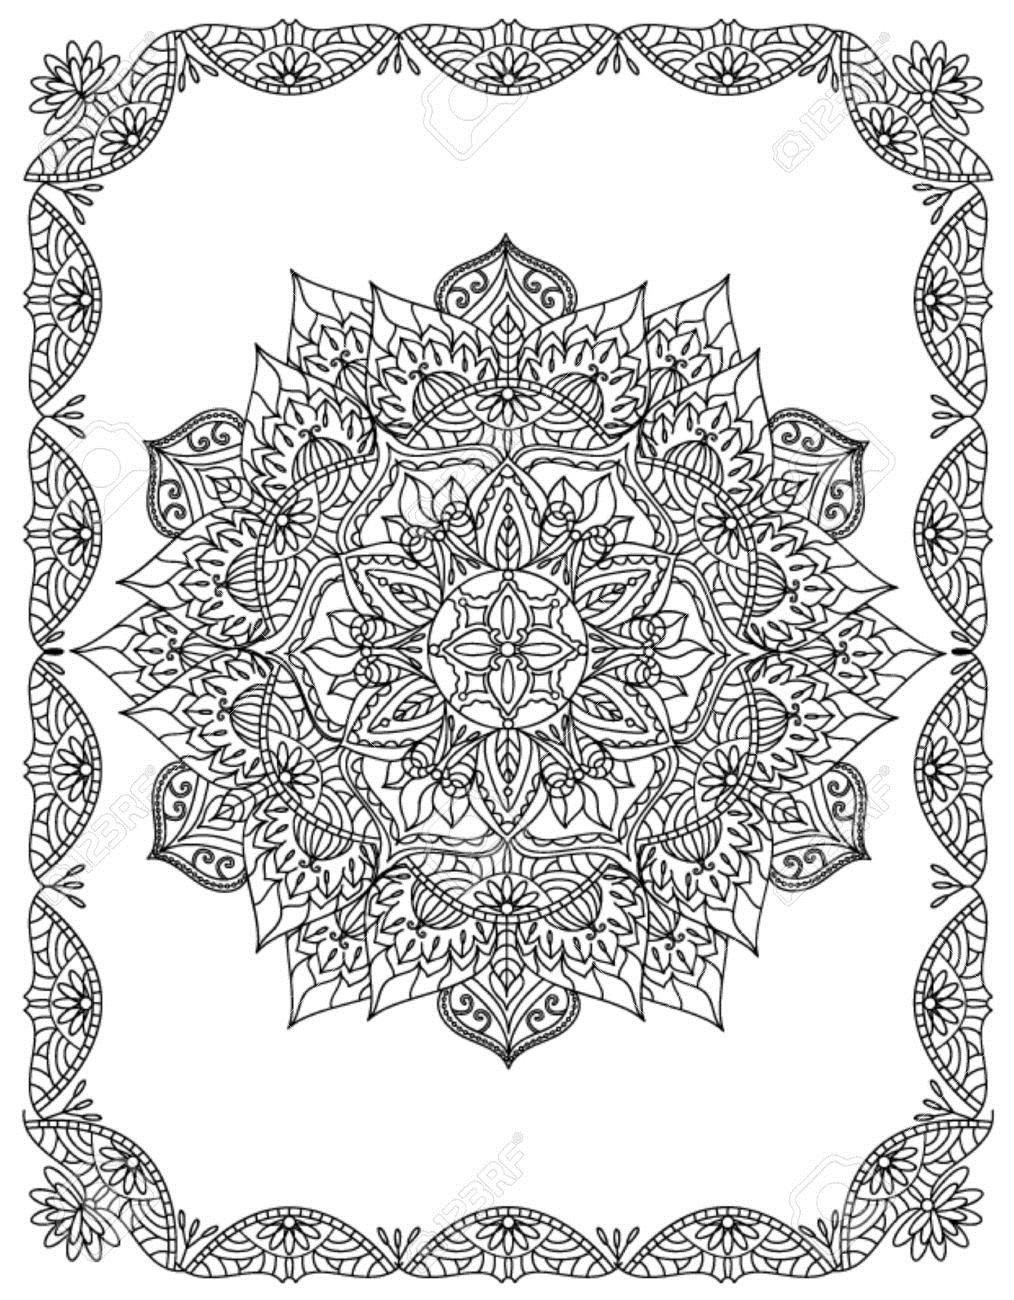 45986935-Mandala-Coloring-Illustration-Stock-Photo